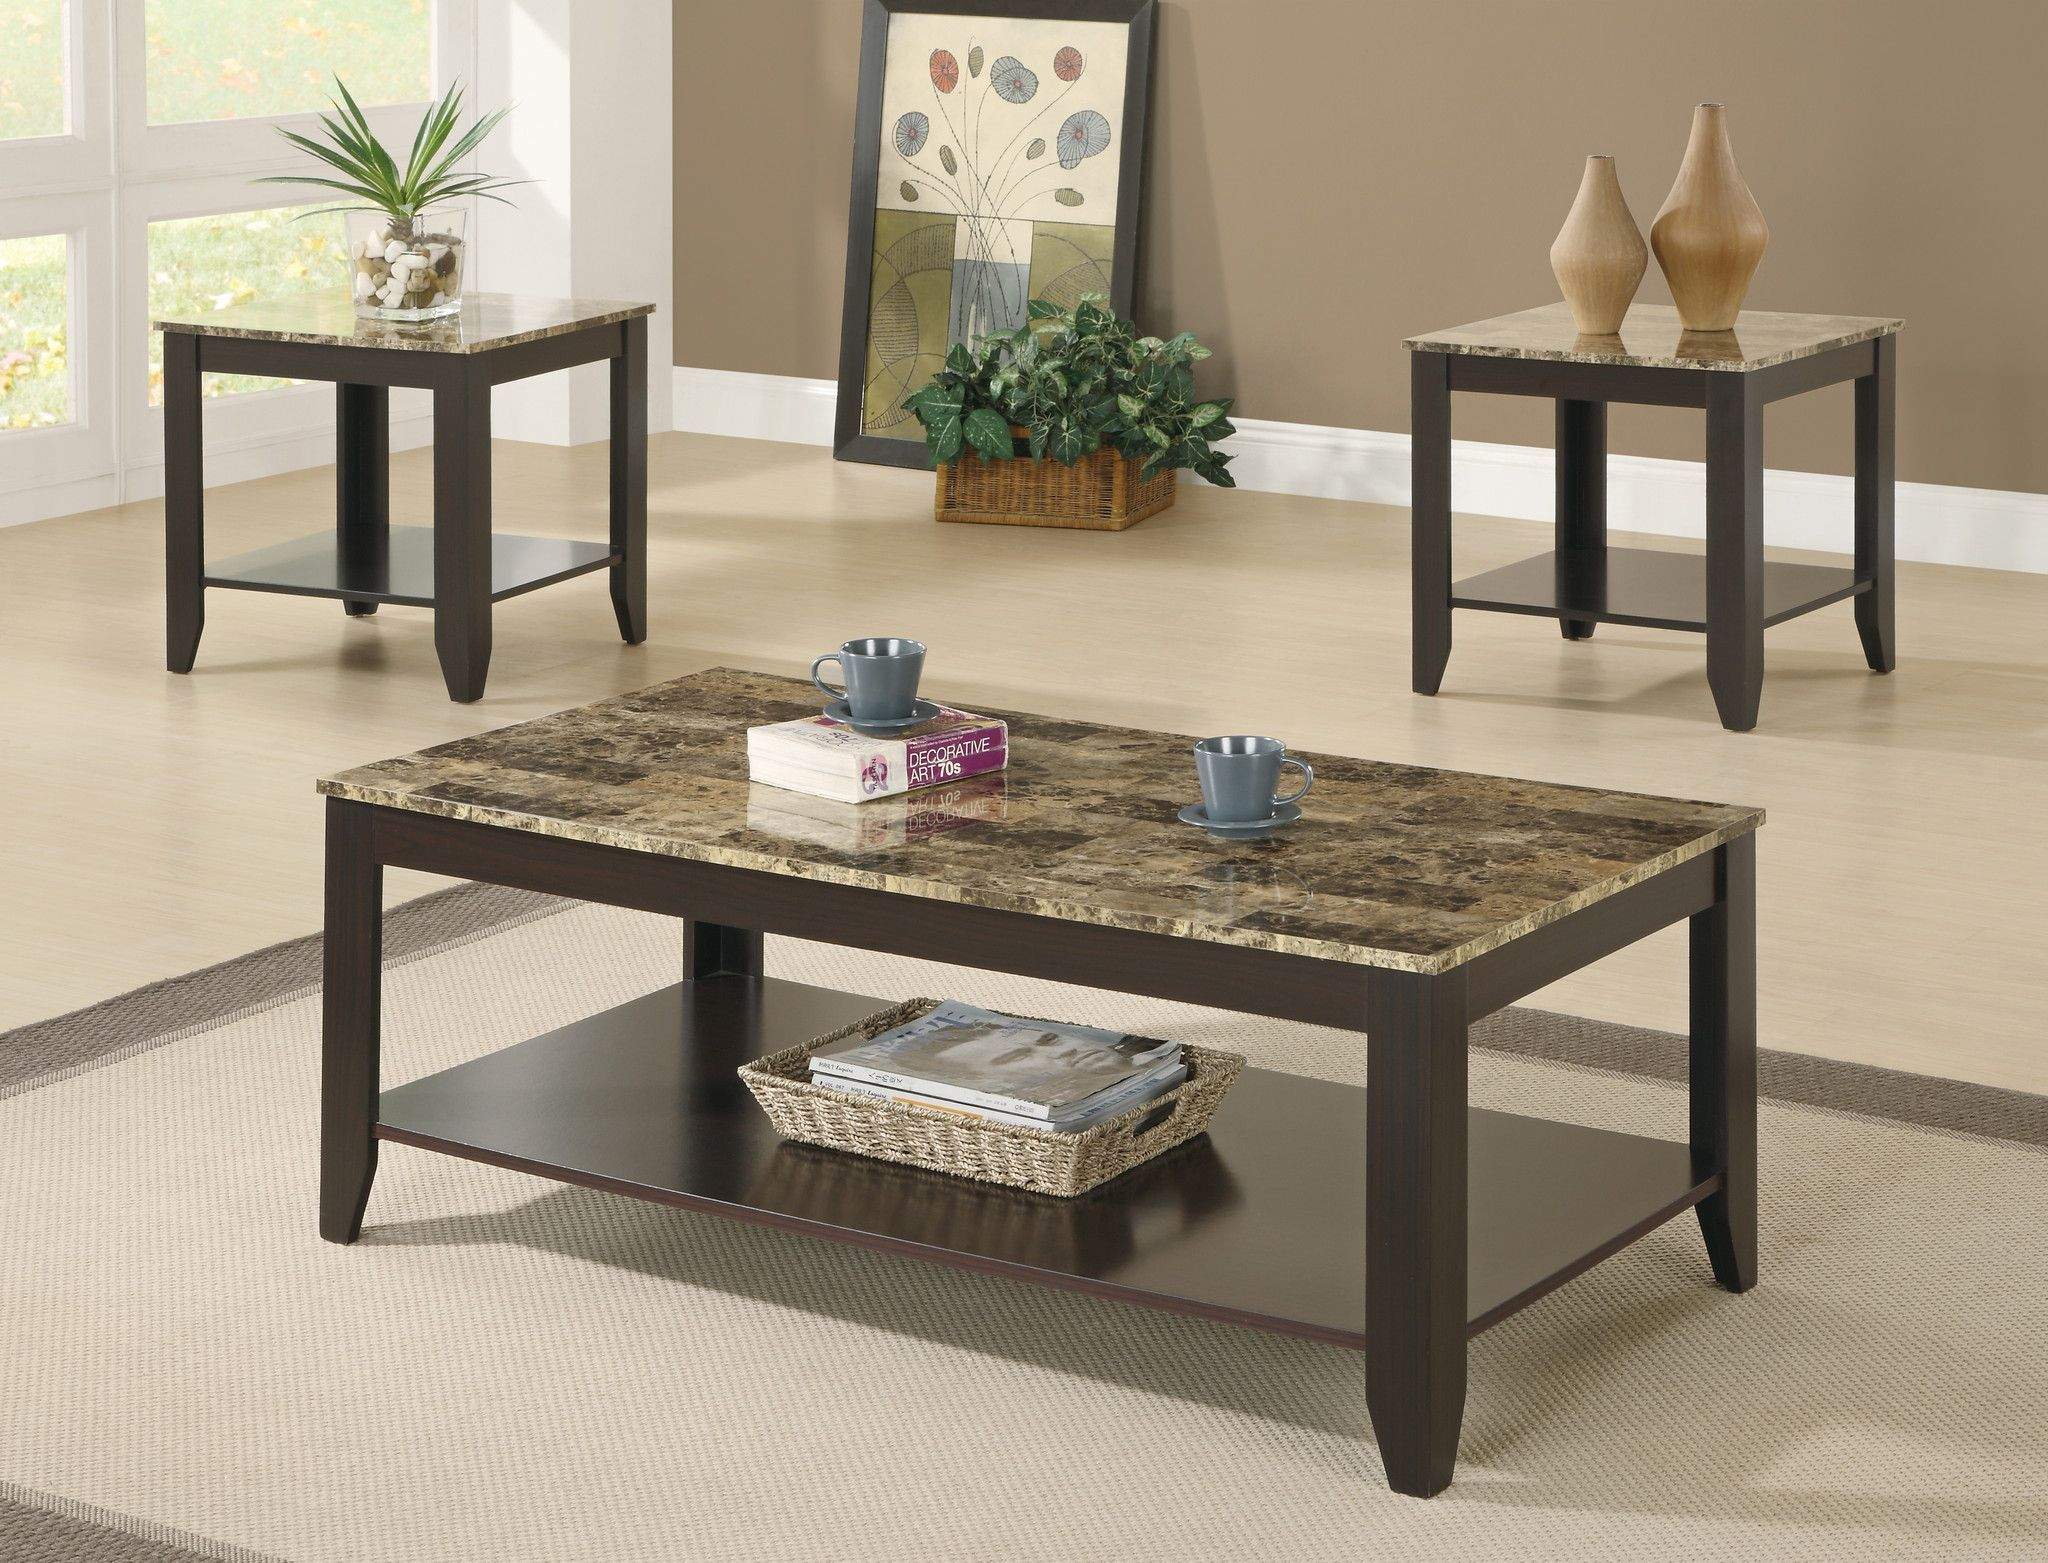 Table Set 3 Piece Set Cappuccino Marble Look Top